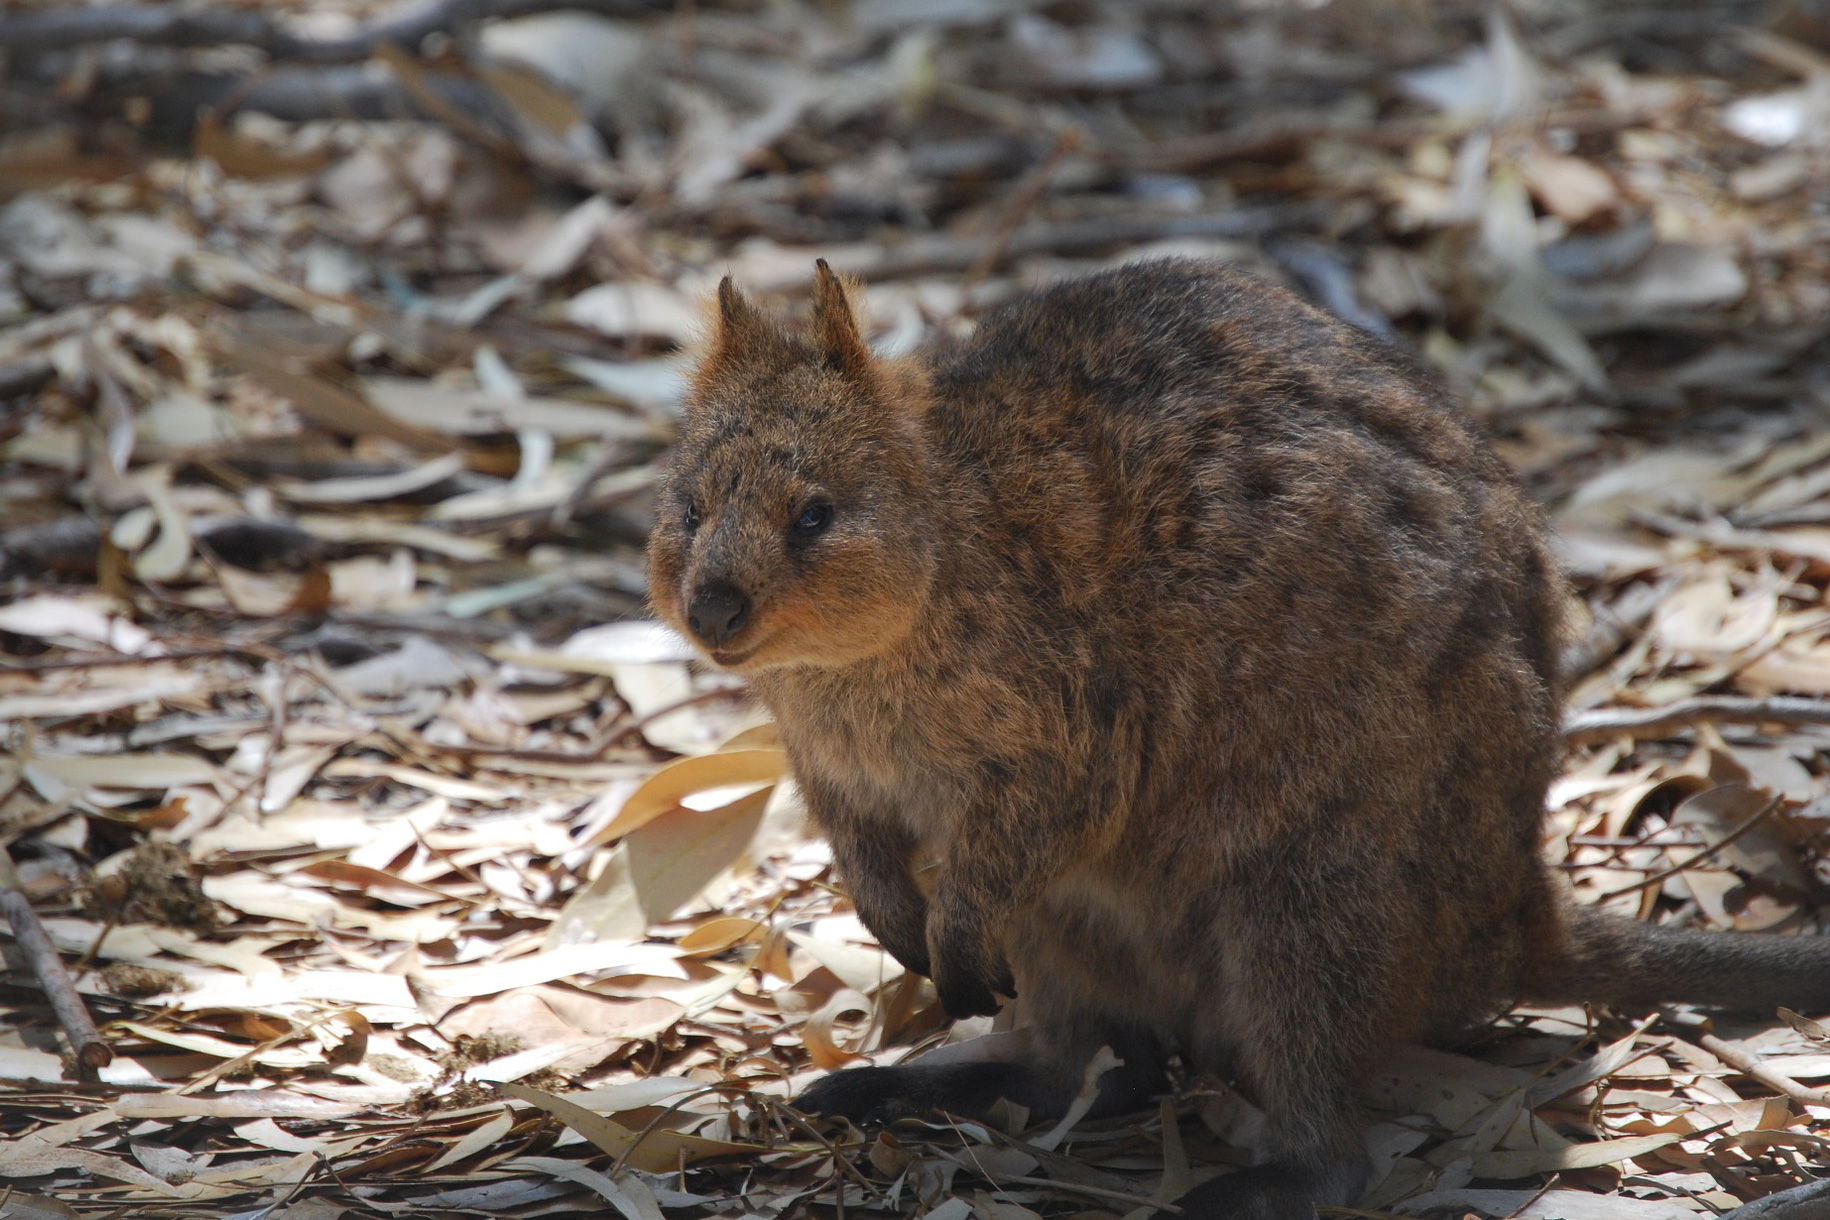 http://60%20Minutes%20From%20Perth%20Quokka%20714034%201920